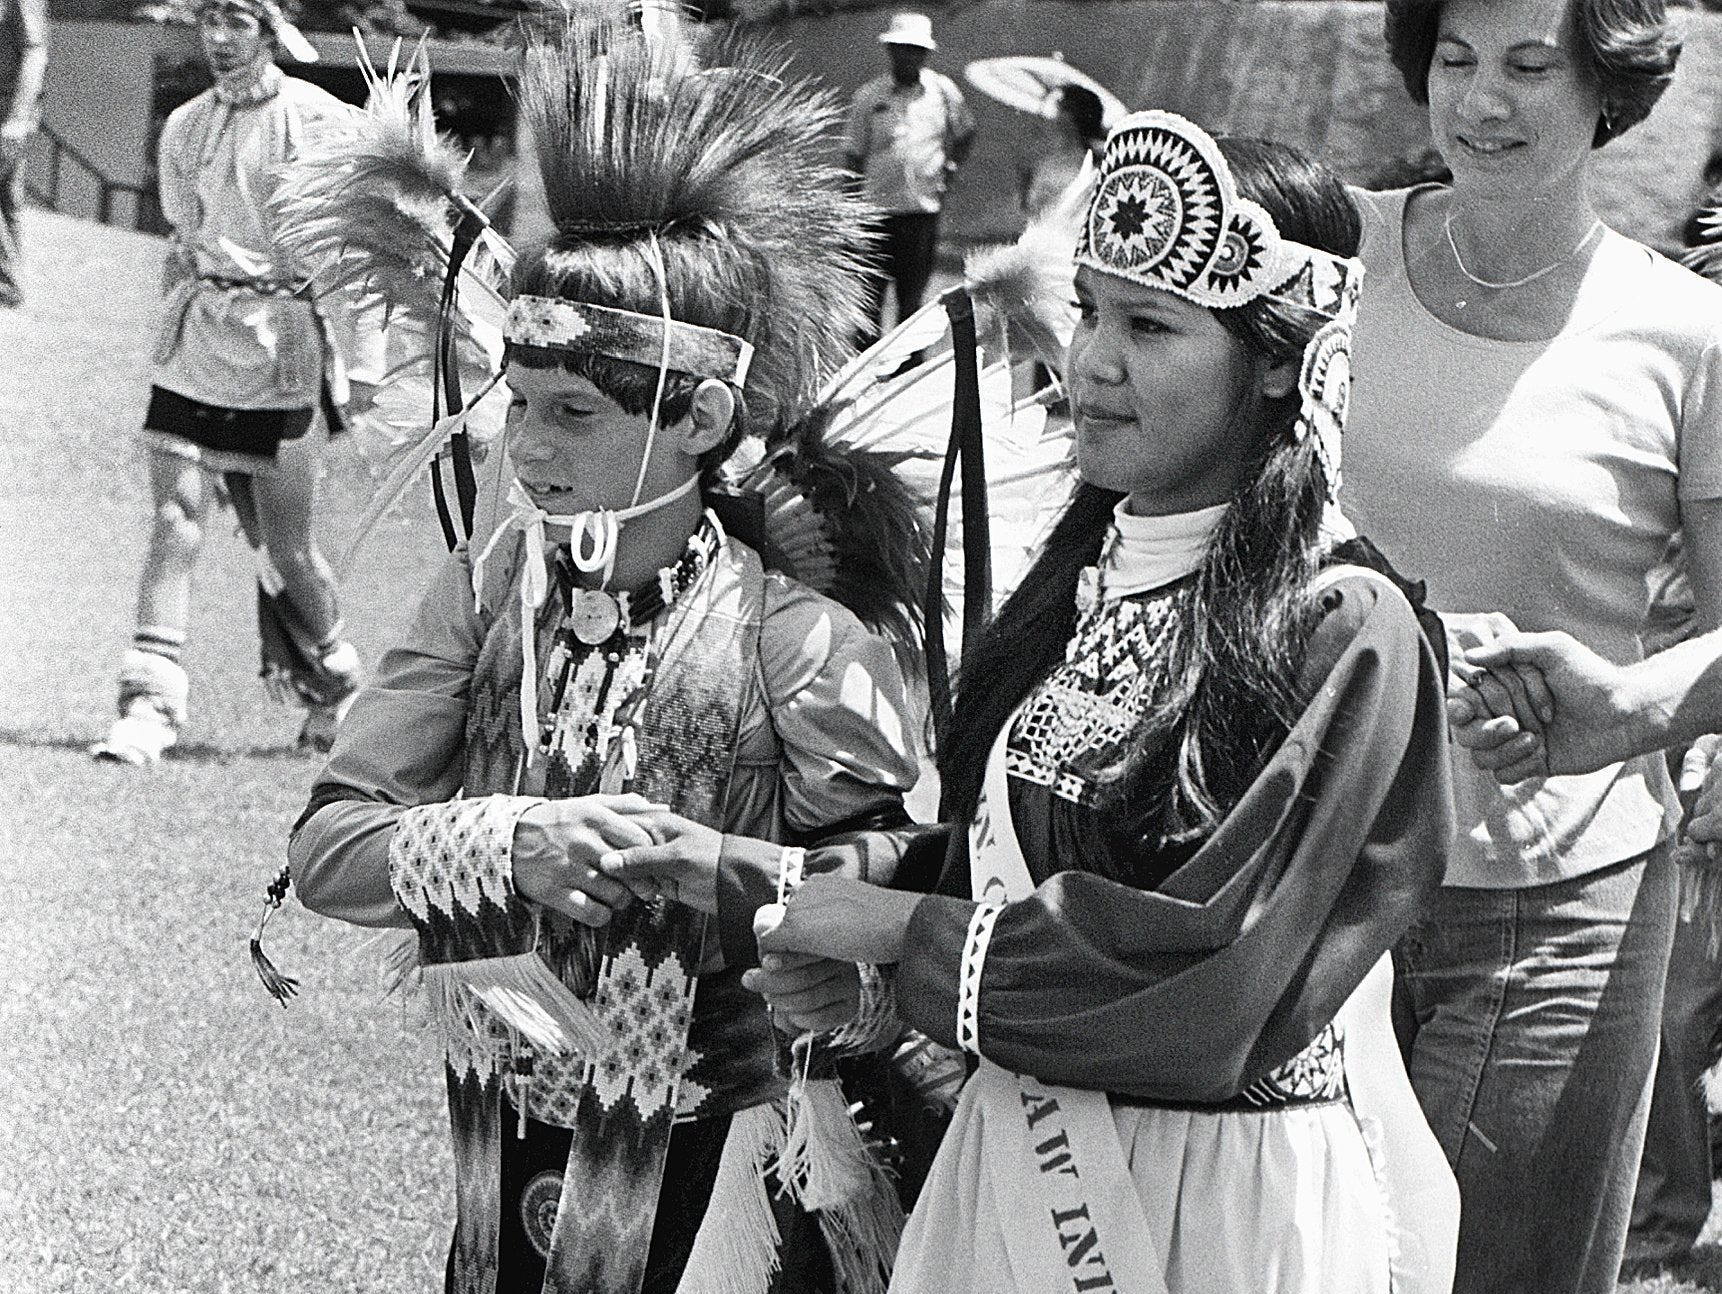 Billy Hooper, 13, was the escort of Sheri Ann Robinson, 17, the newly crowned 1978-79 Choctaw Indian Princess. Miss Robinson was selected on 4 Aug 1979 during the West Tennessee Choctaw Indian Powwow at Chucalissa Indian Village. The powwow features an exhibition of traditional Choctaw village life, with emphasis on music, dance and games.